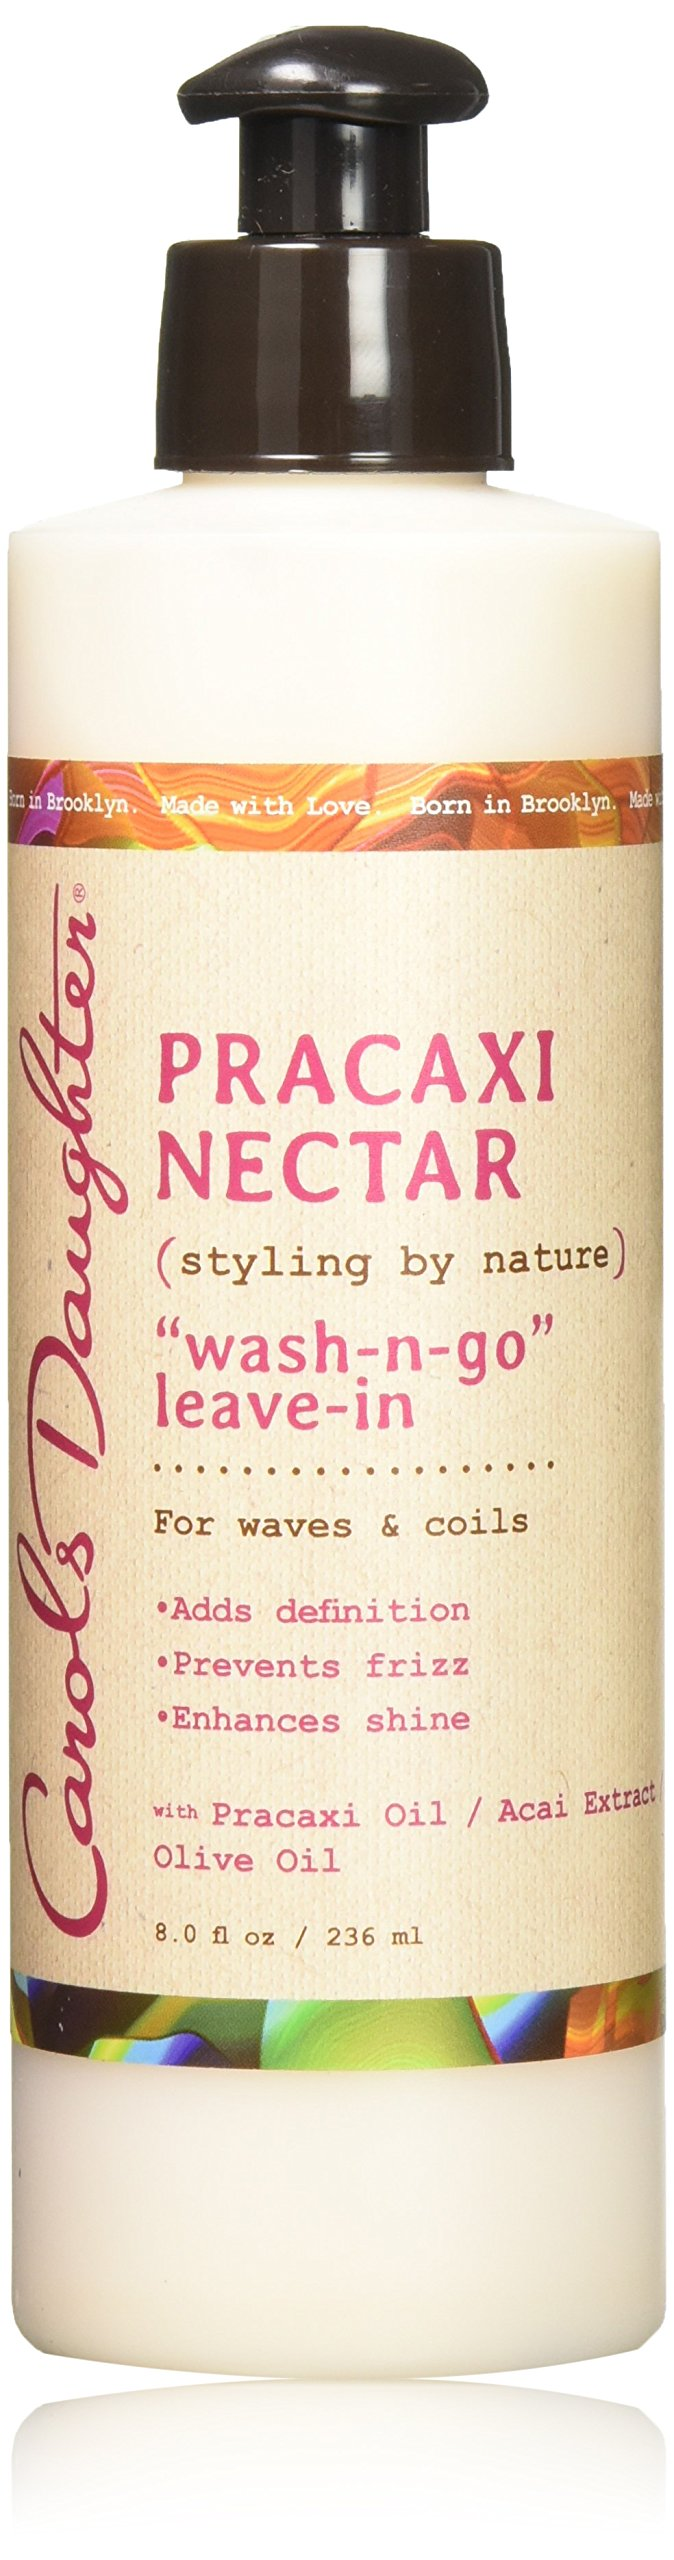 Carol's Daughter Pracaxi Nectar Wash-n- Go Leave-In, For All Hair Types, 8 fl oz (Packaging May Vary)